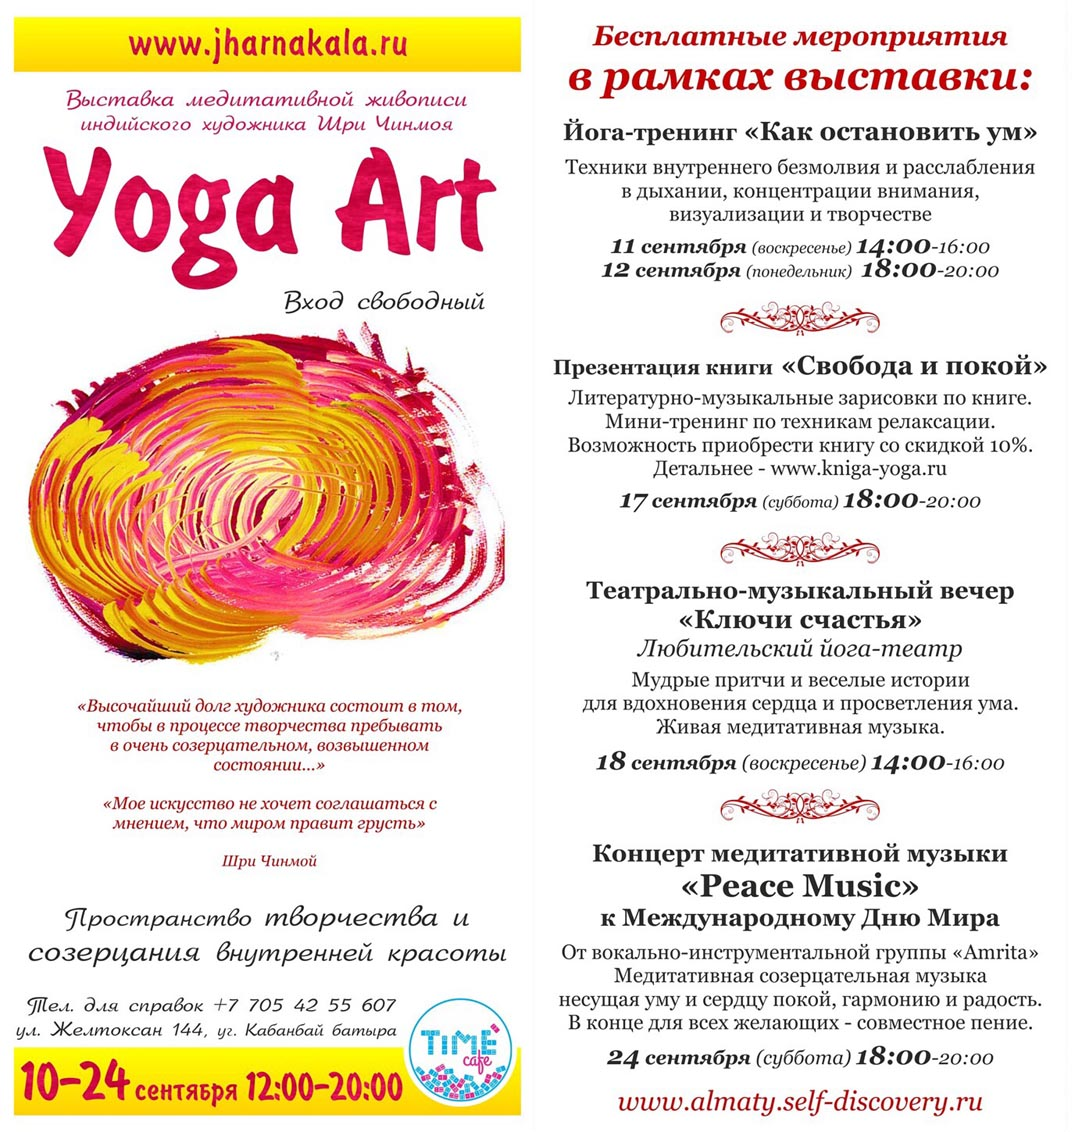 almaty-yoga-art-16